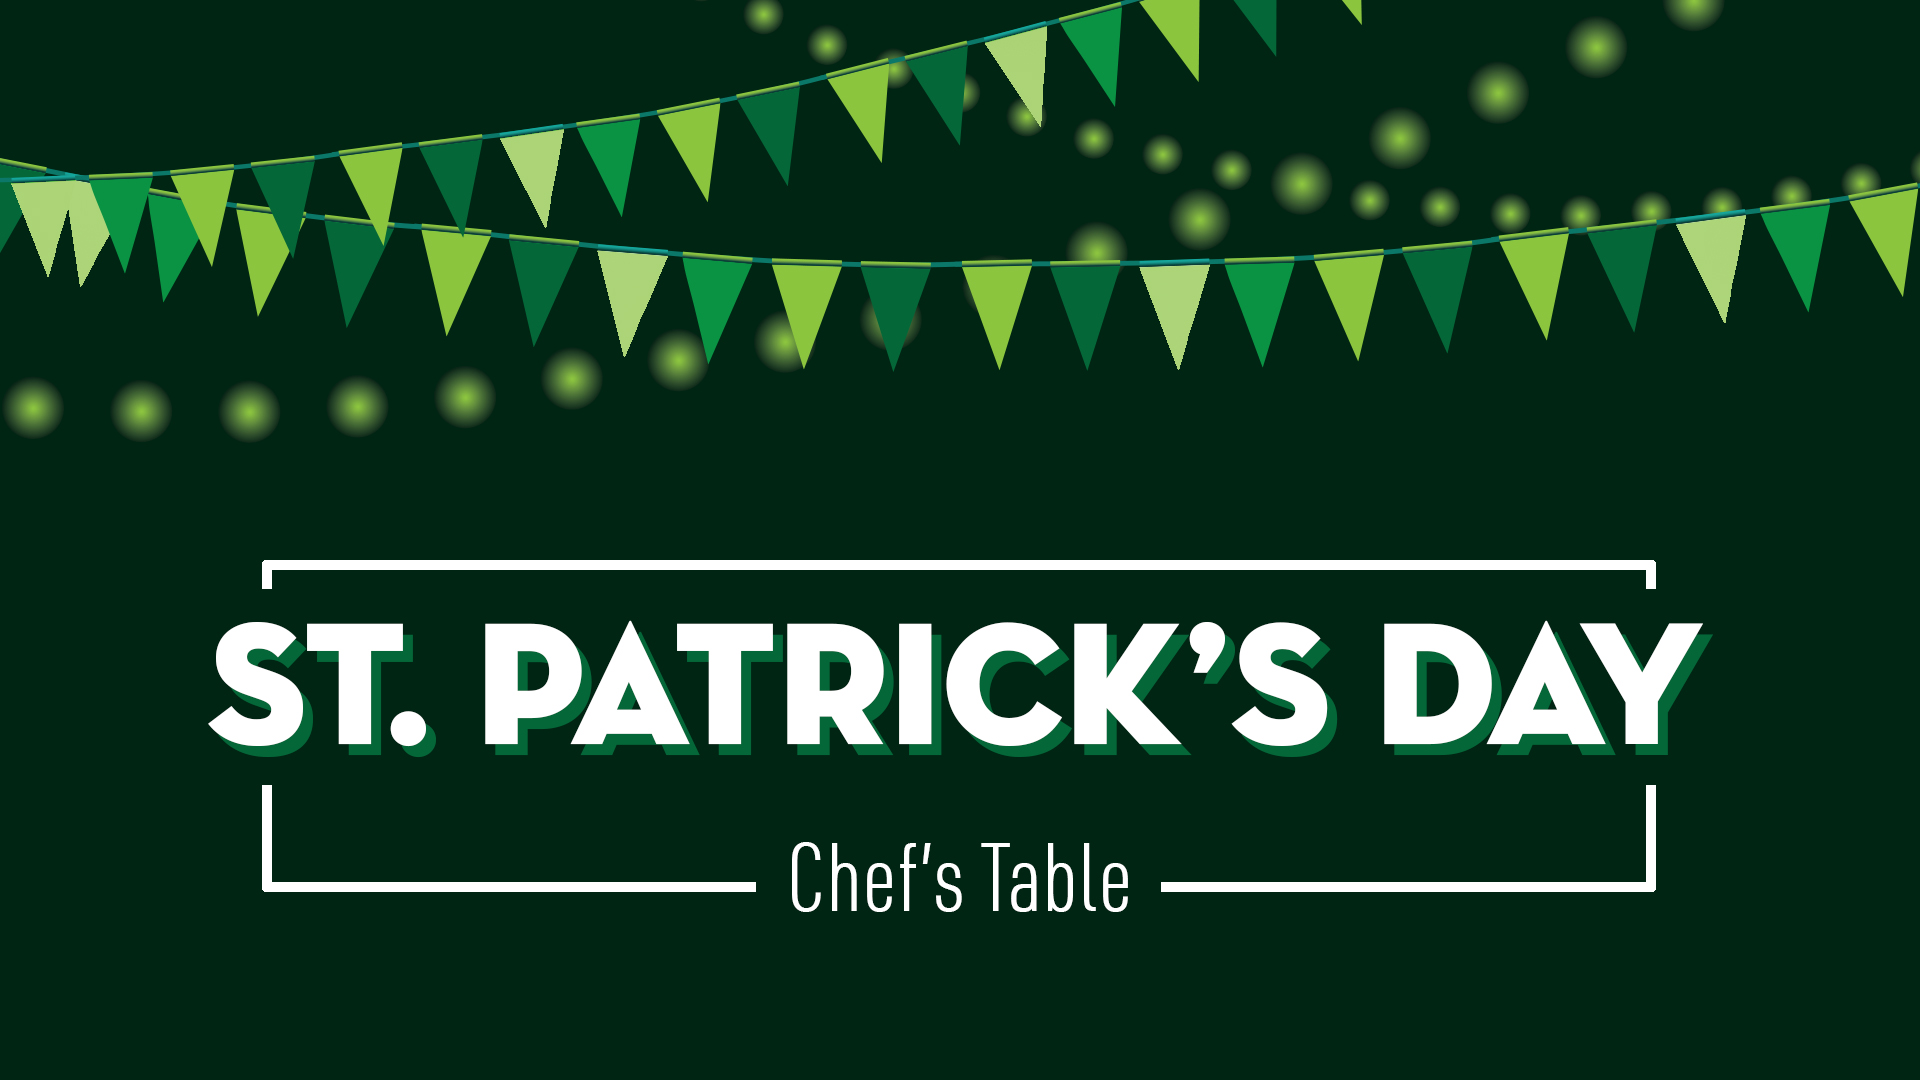 St. Patrick's Day Chef's Table